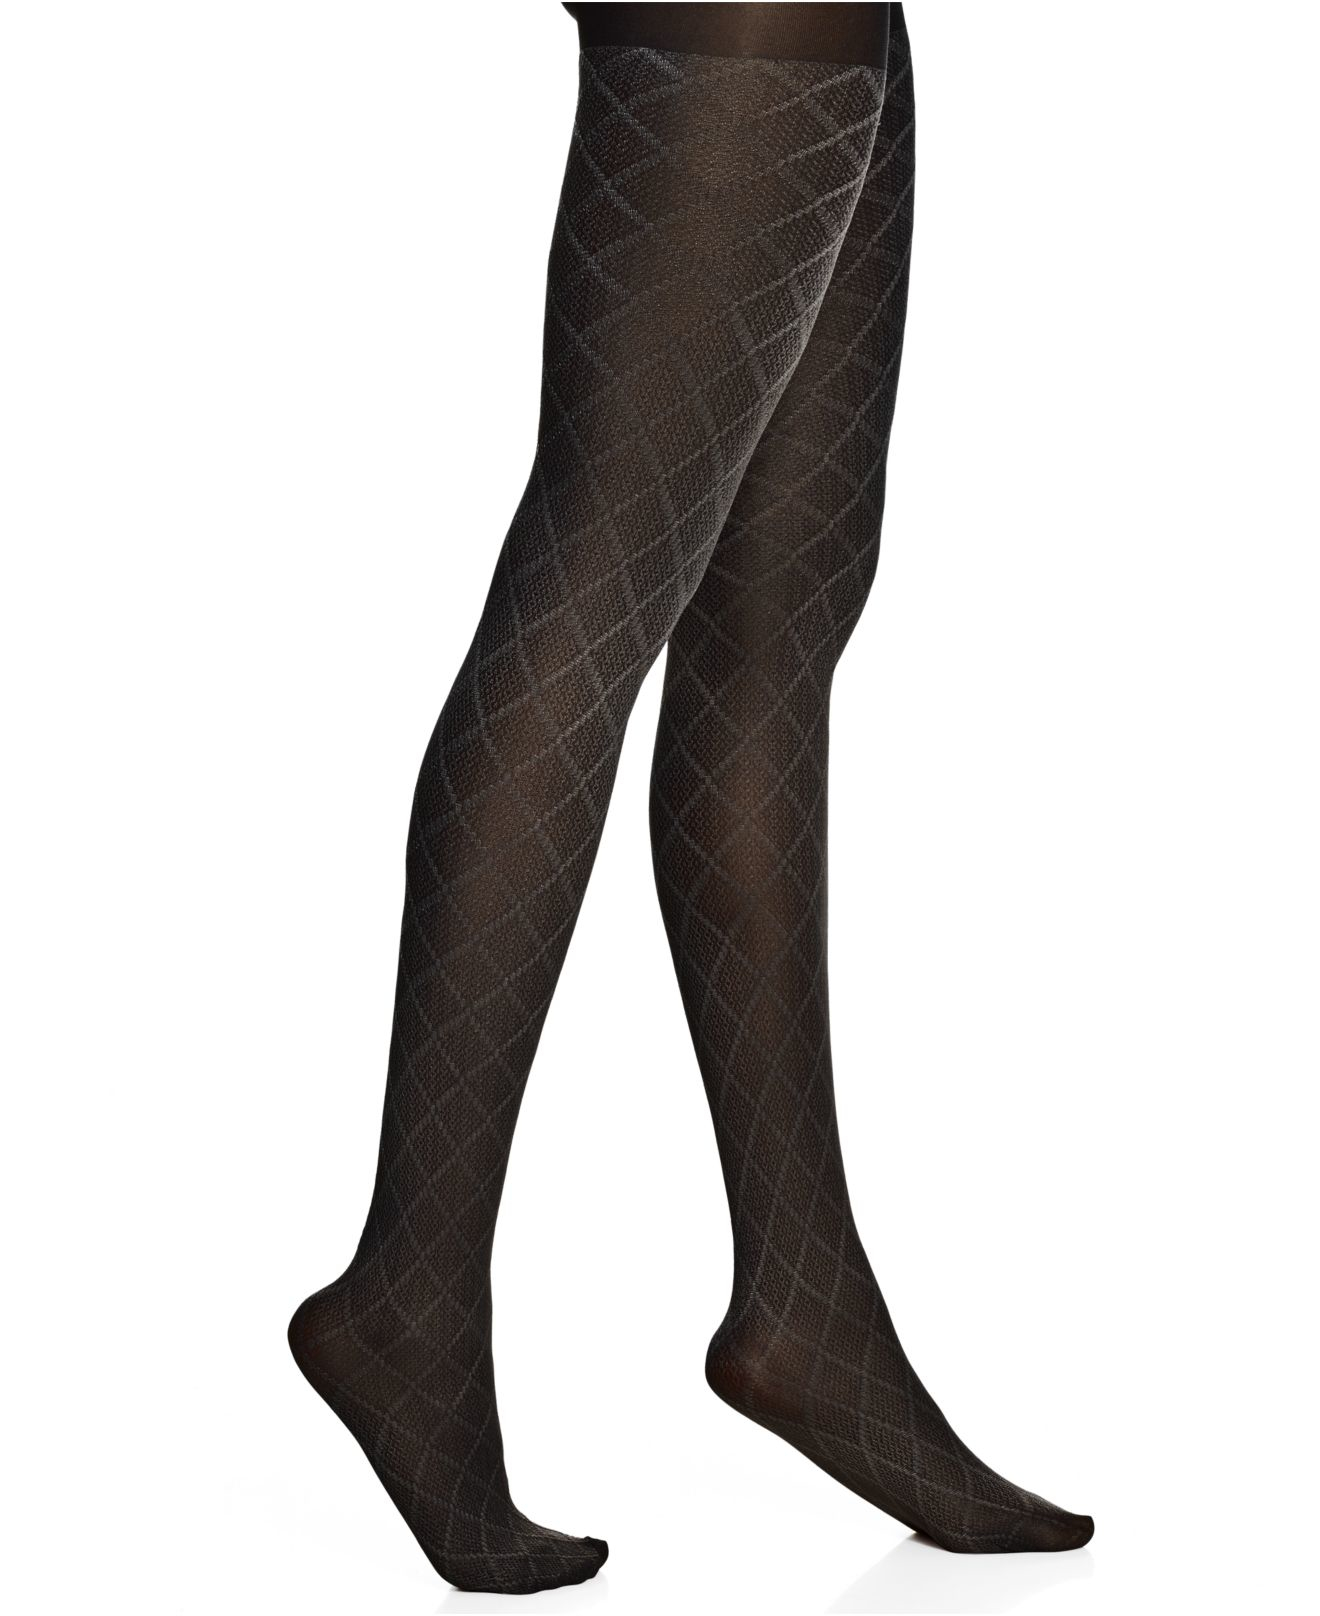 77b7c0d56b6 Hue Texture Diamond Tights in Black - Lyst